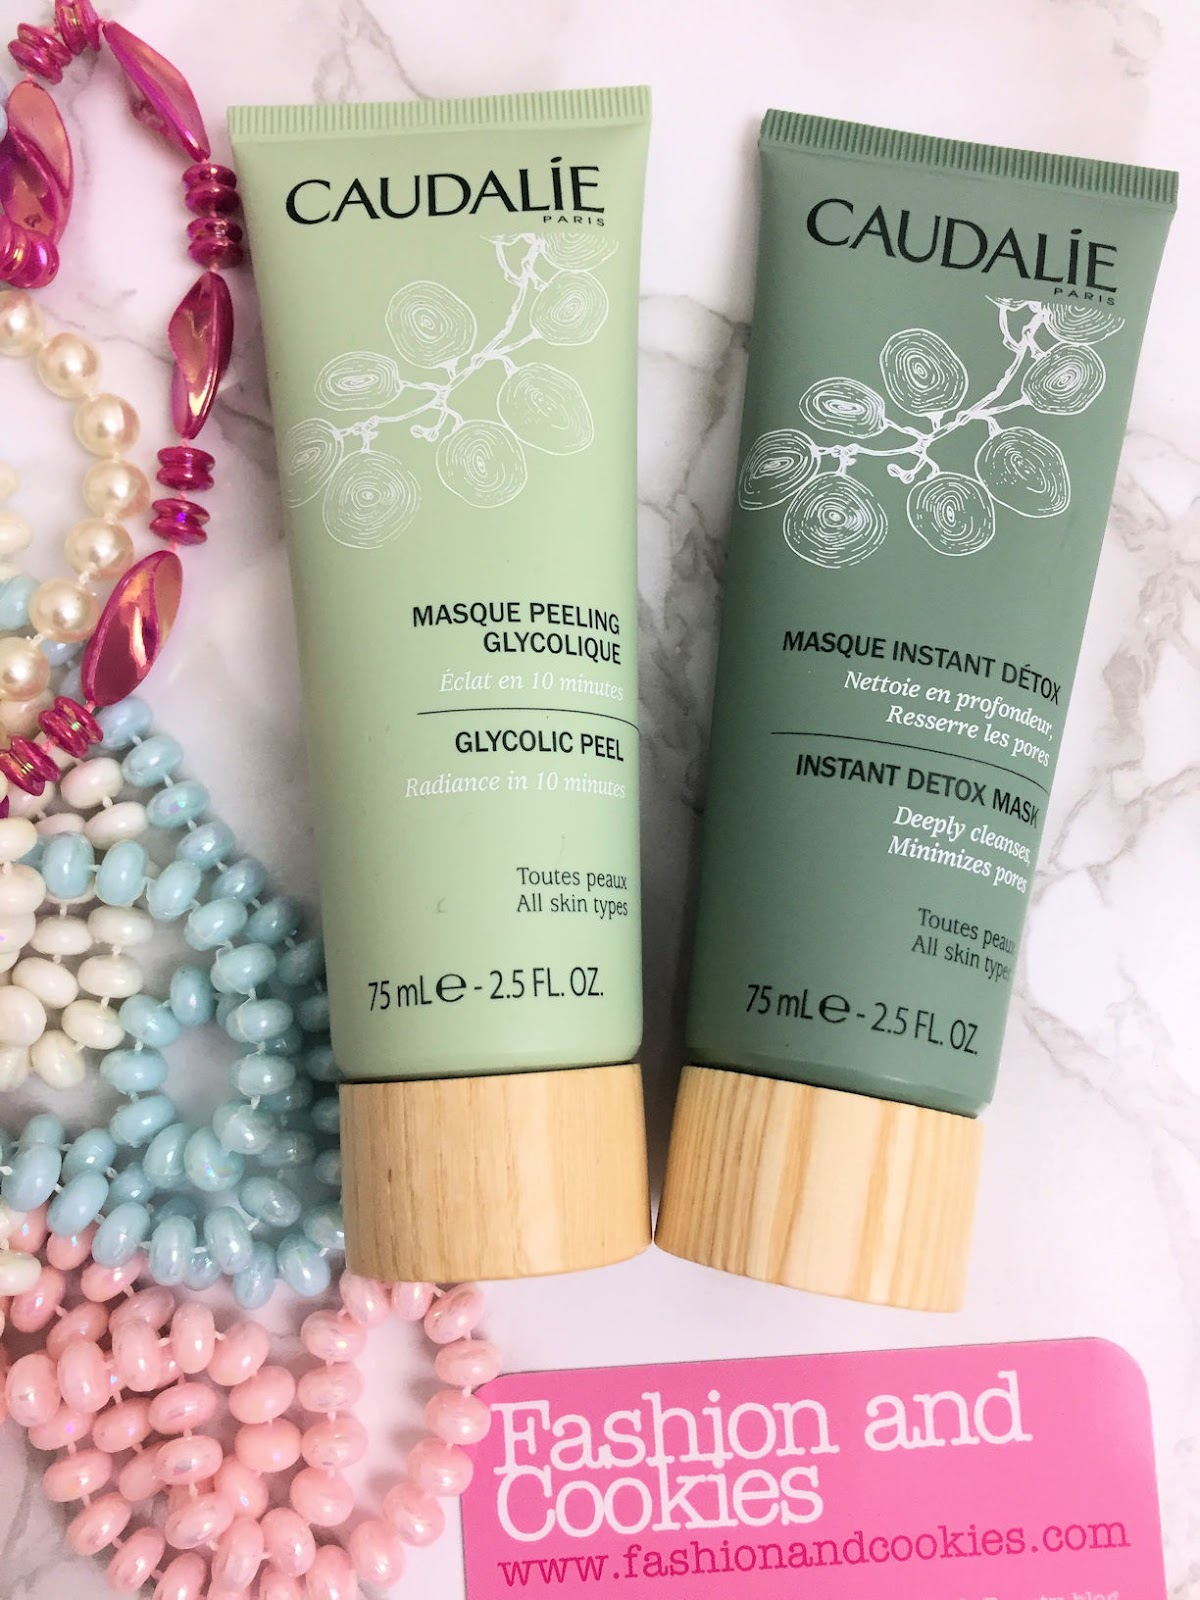 Caudalie skincare masks review on Fashion and Cookies beauty blog, beauty blogger